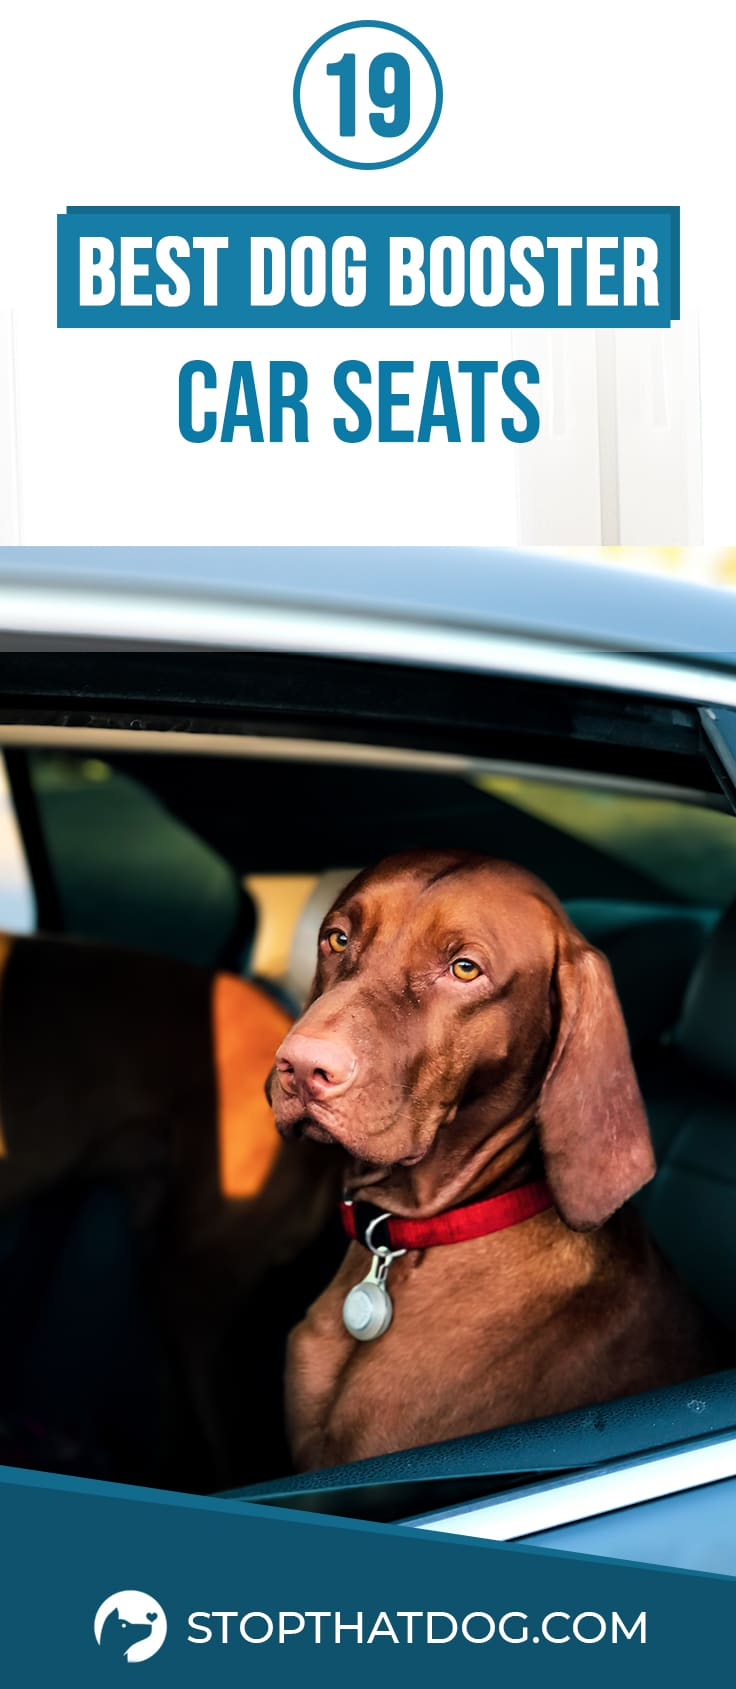 Dog Booster Car Seats – An In-Depth Guide (2020)